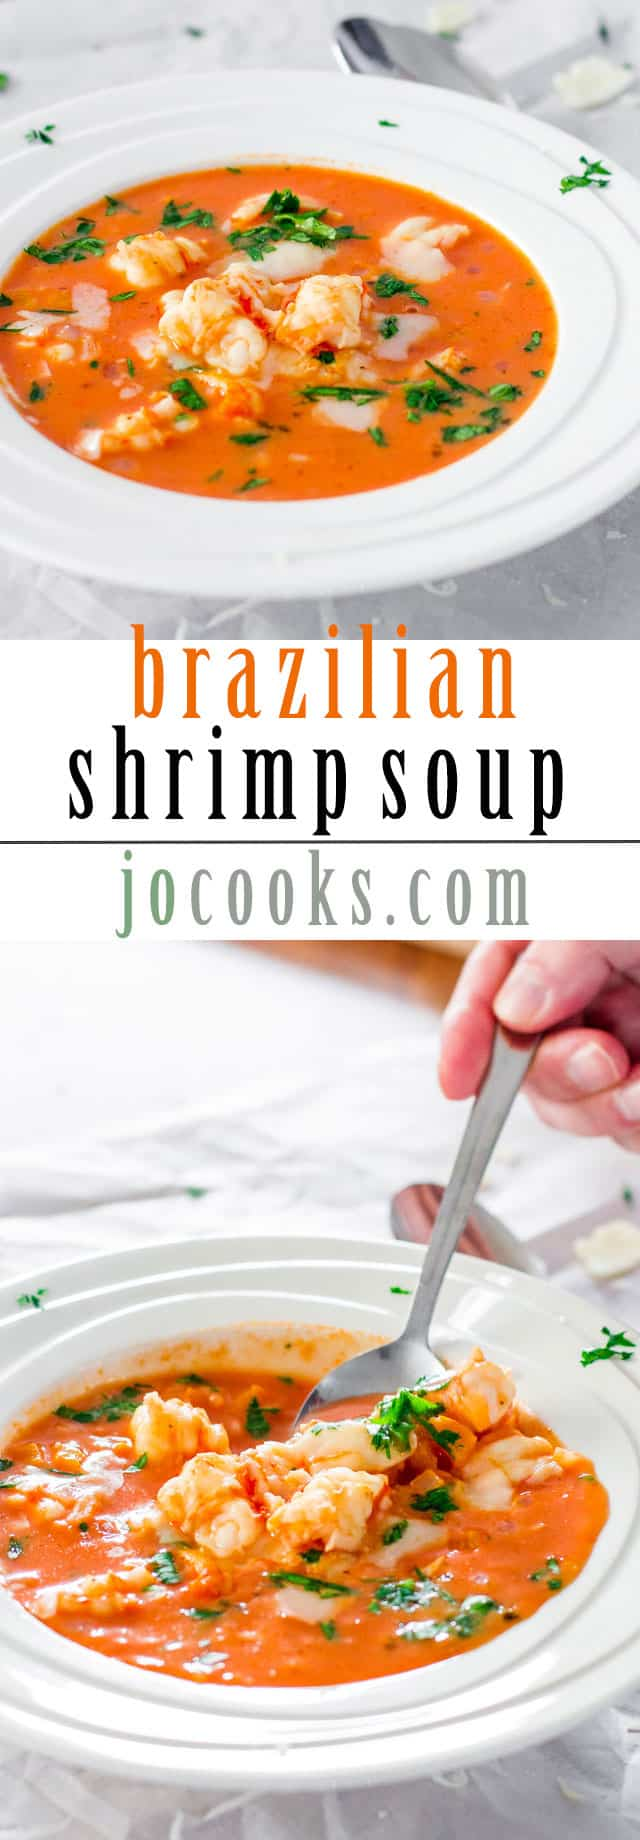 brazilian-shrimp-soup-collage